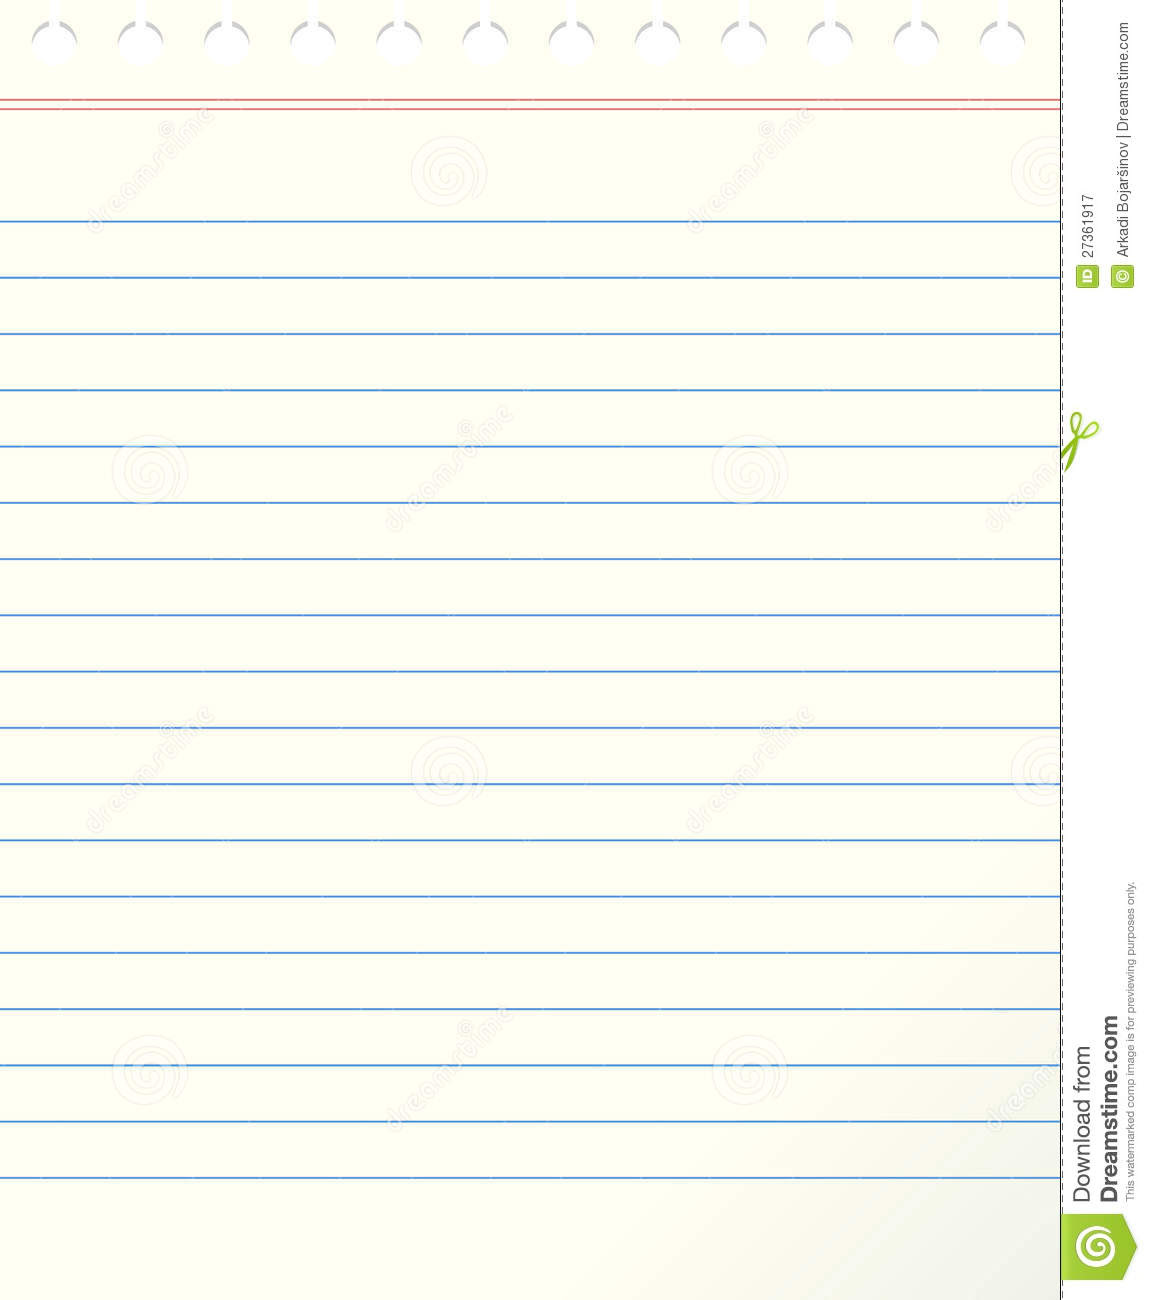 Blank Lined Paper Royalty Free Stock Photography - Image: 27361917